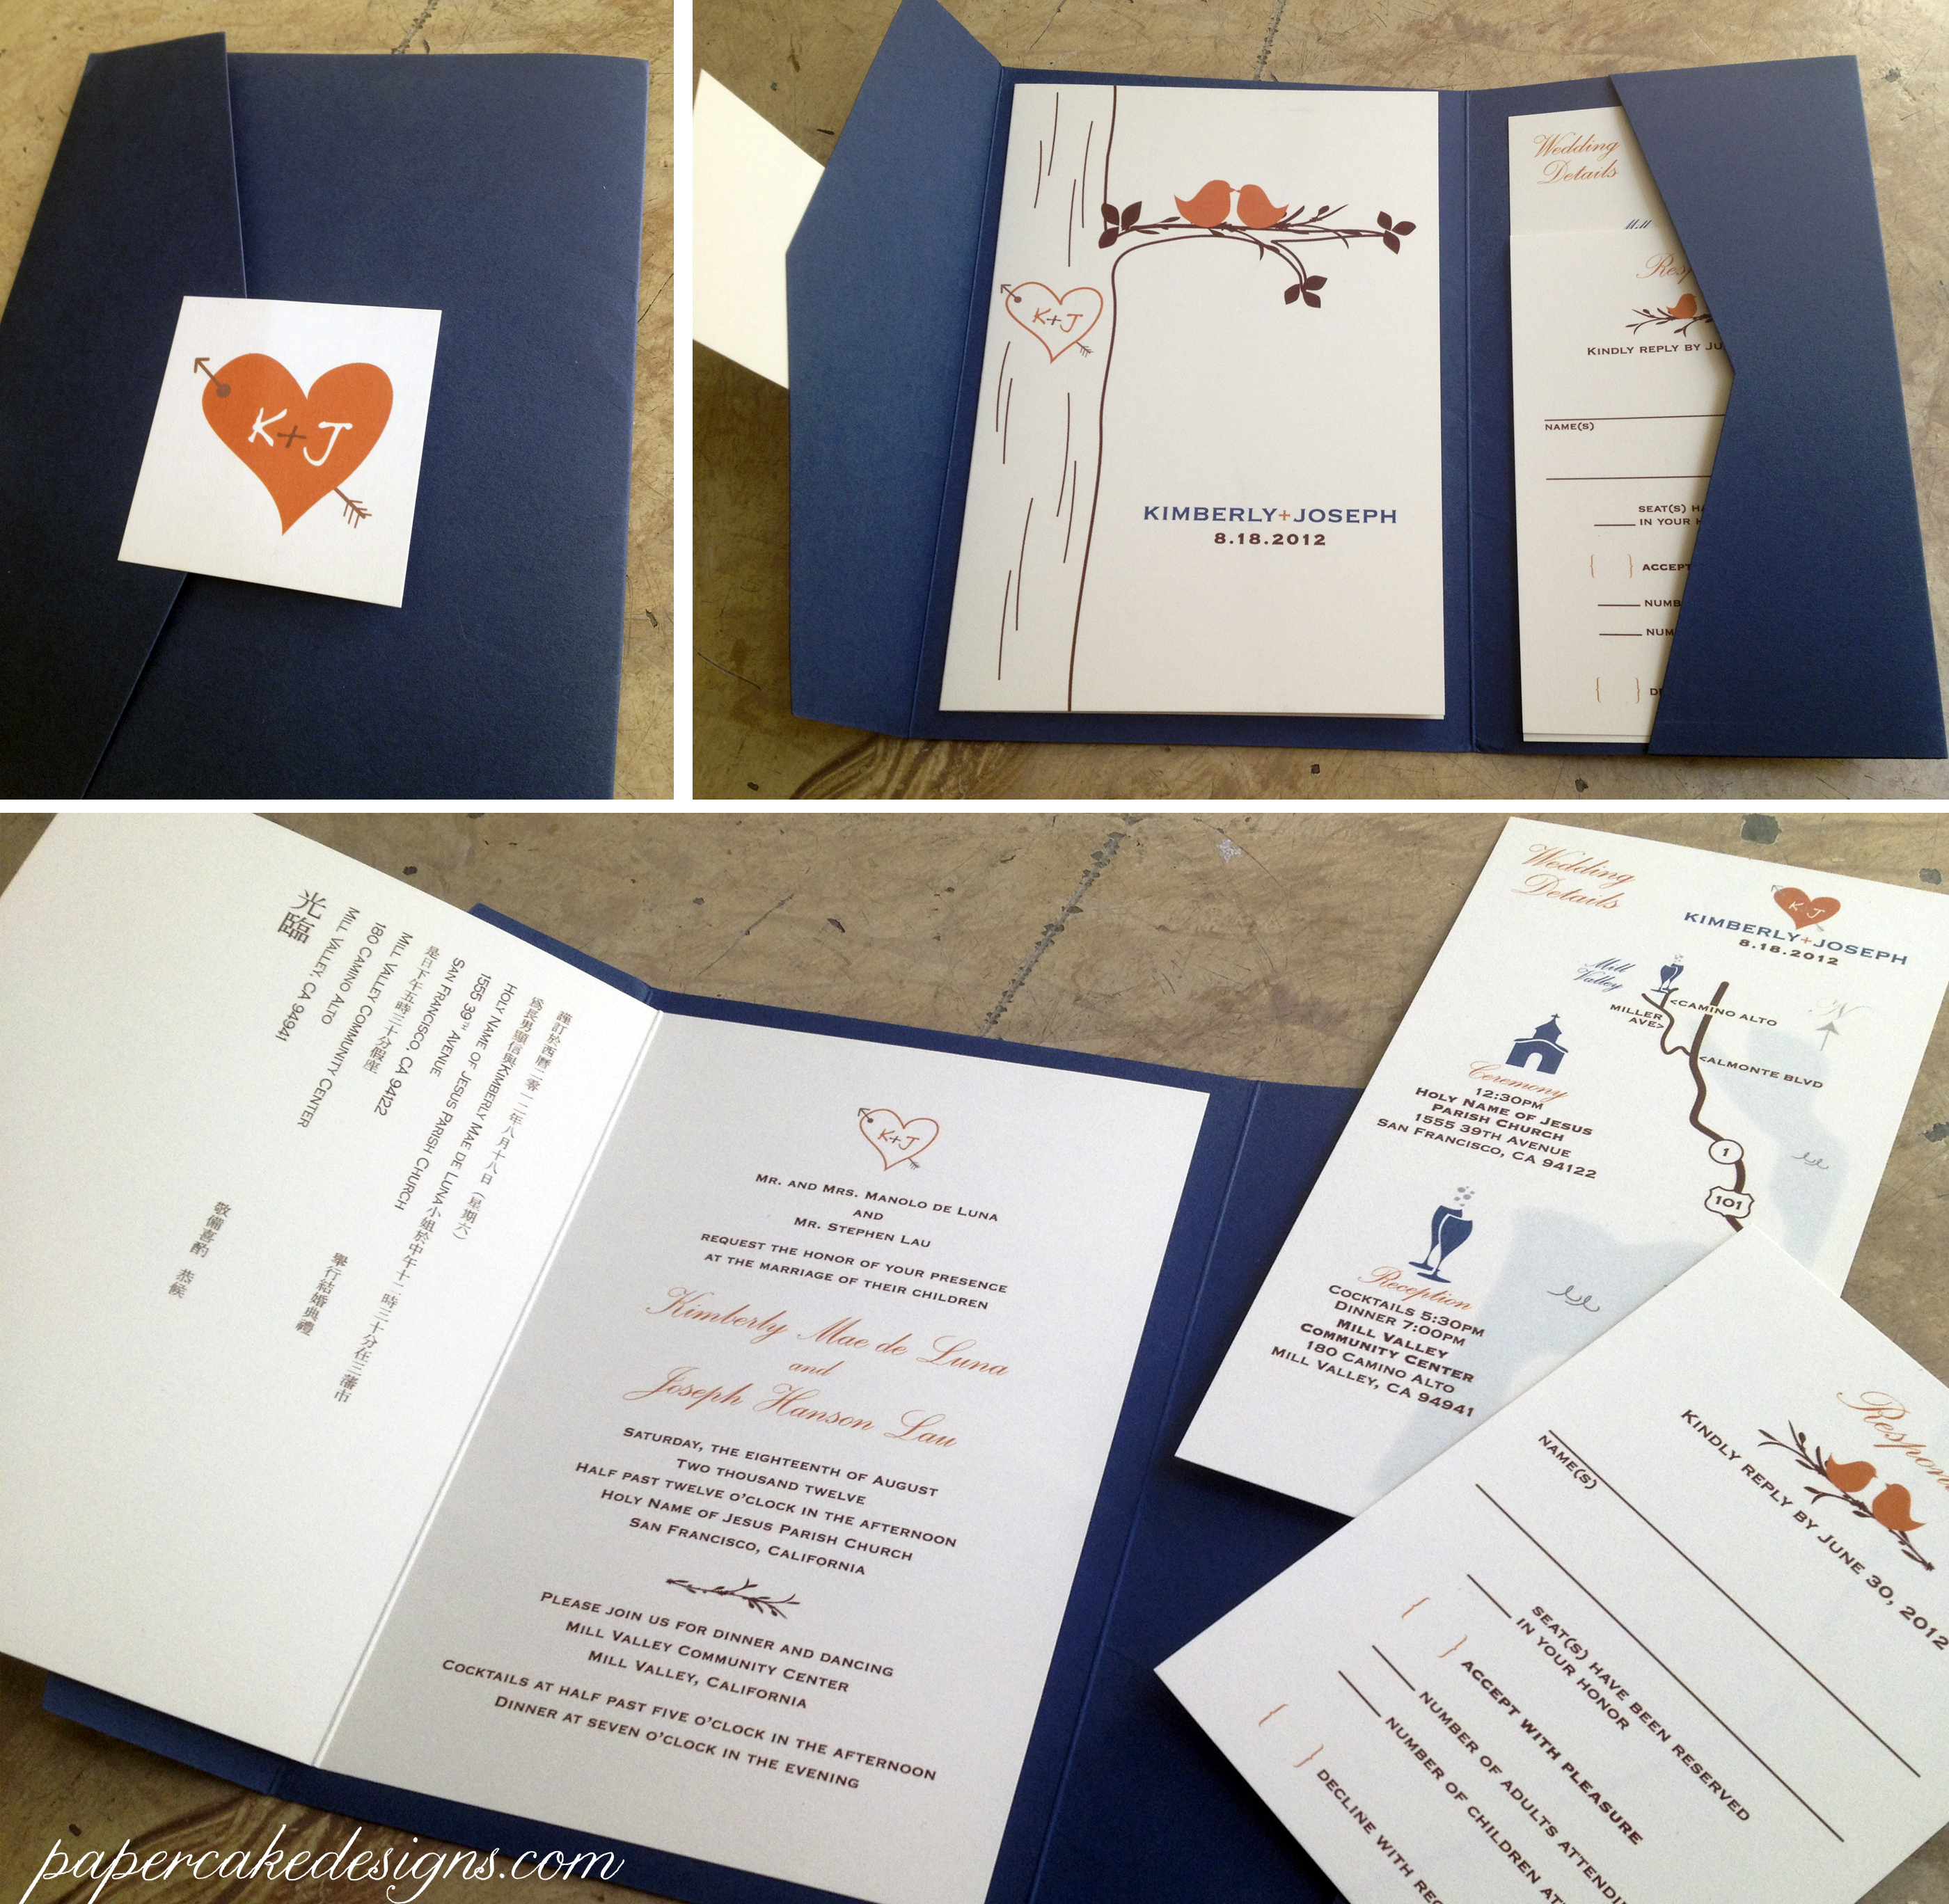 diy invite - Romeo.landinez.co